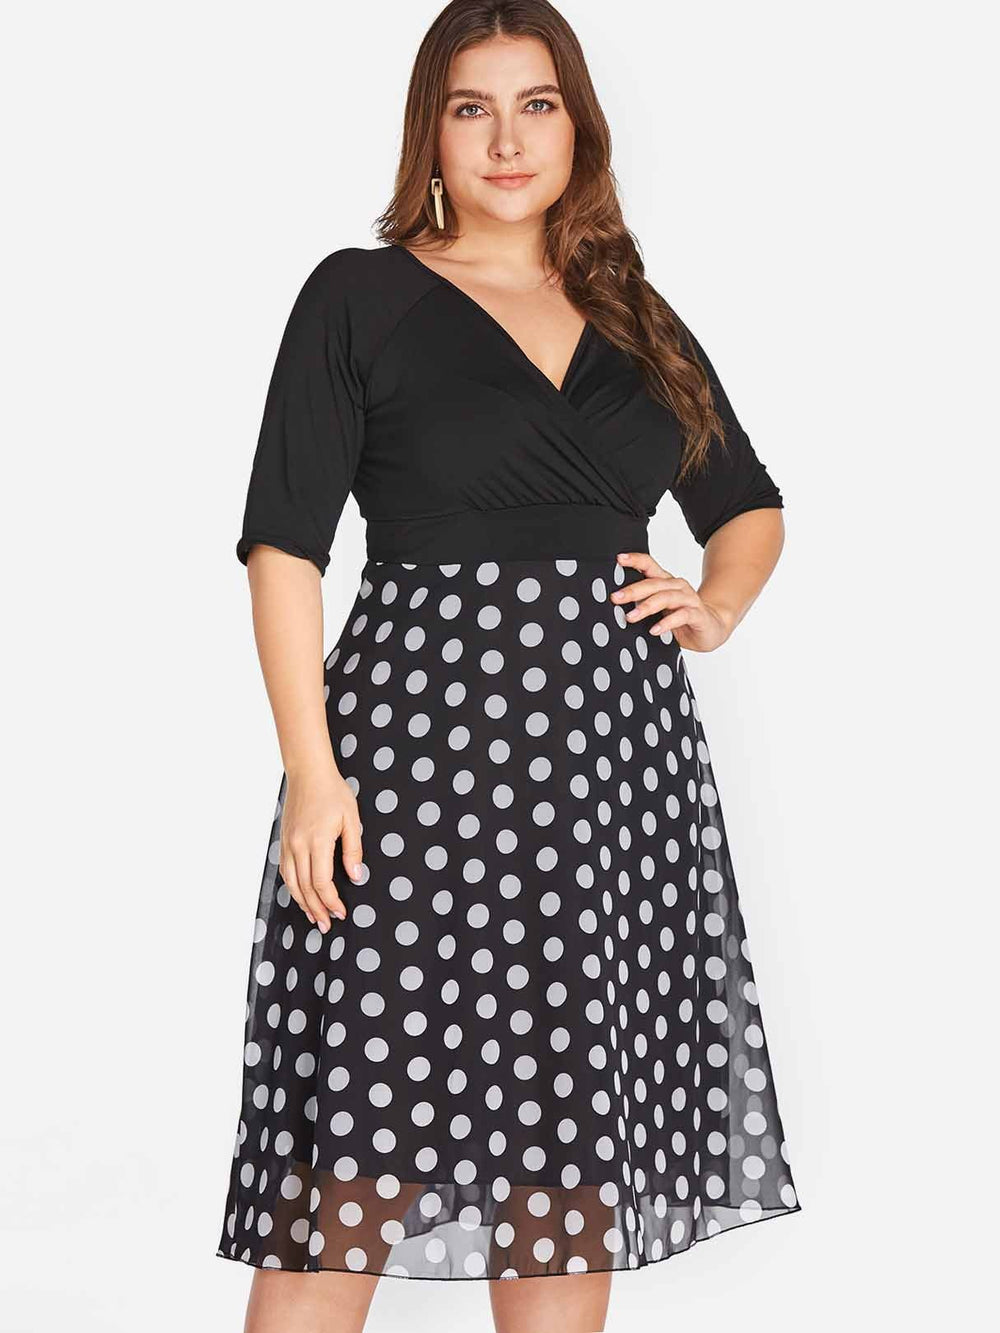 V-Neck Polka Dot Wrap Half Sleeve Black Plus Size Dress